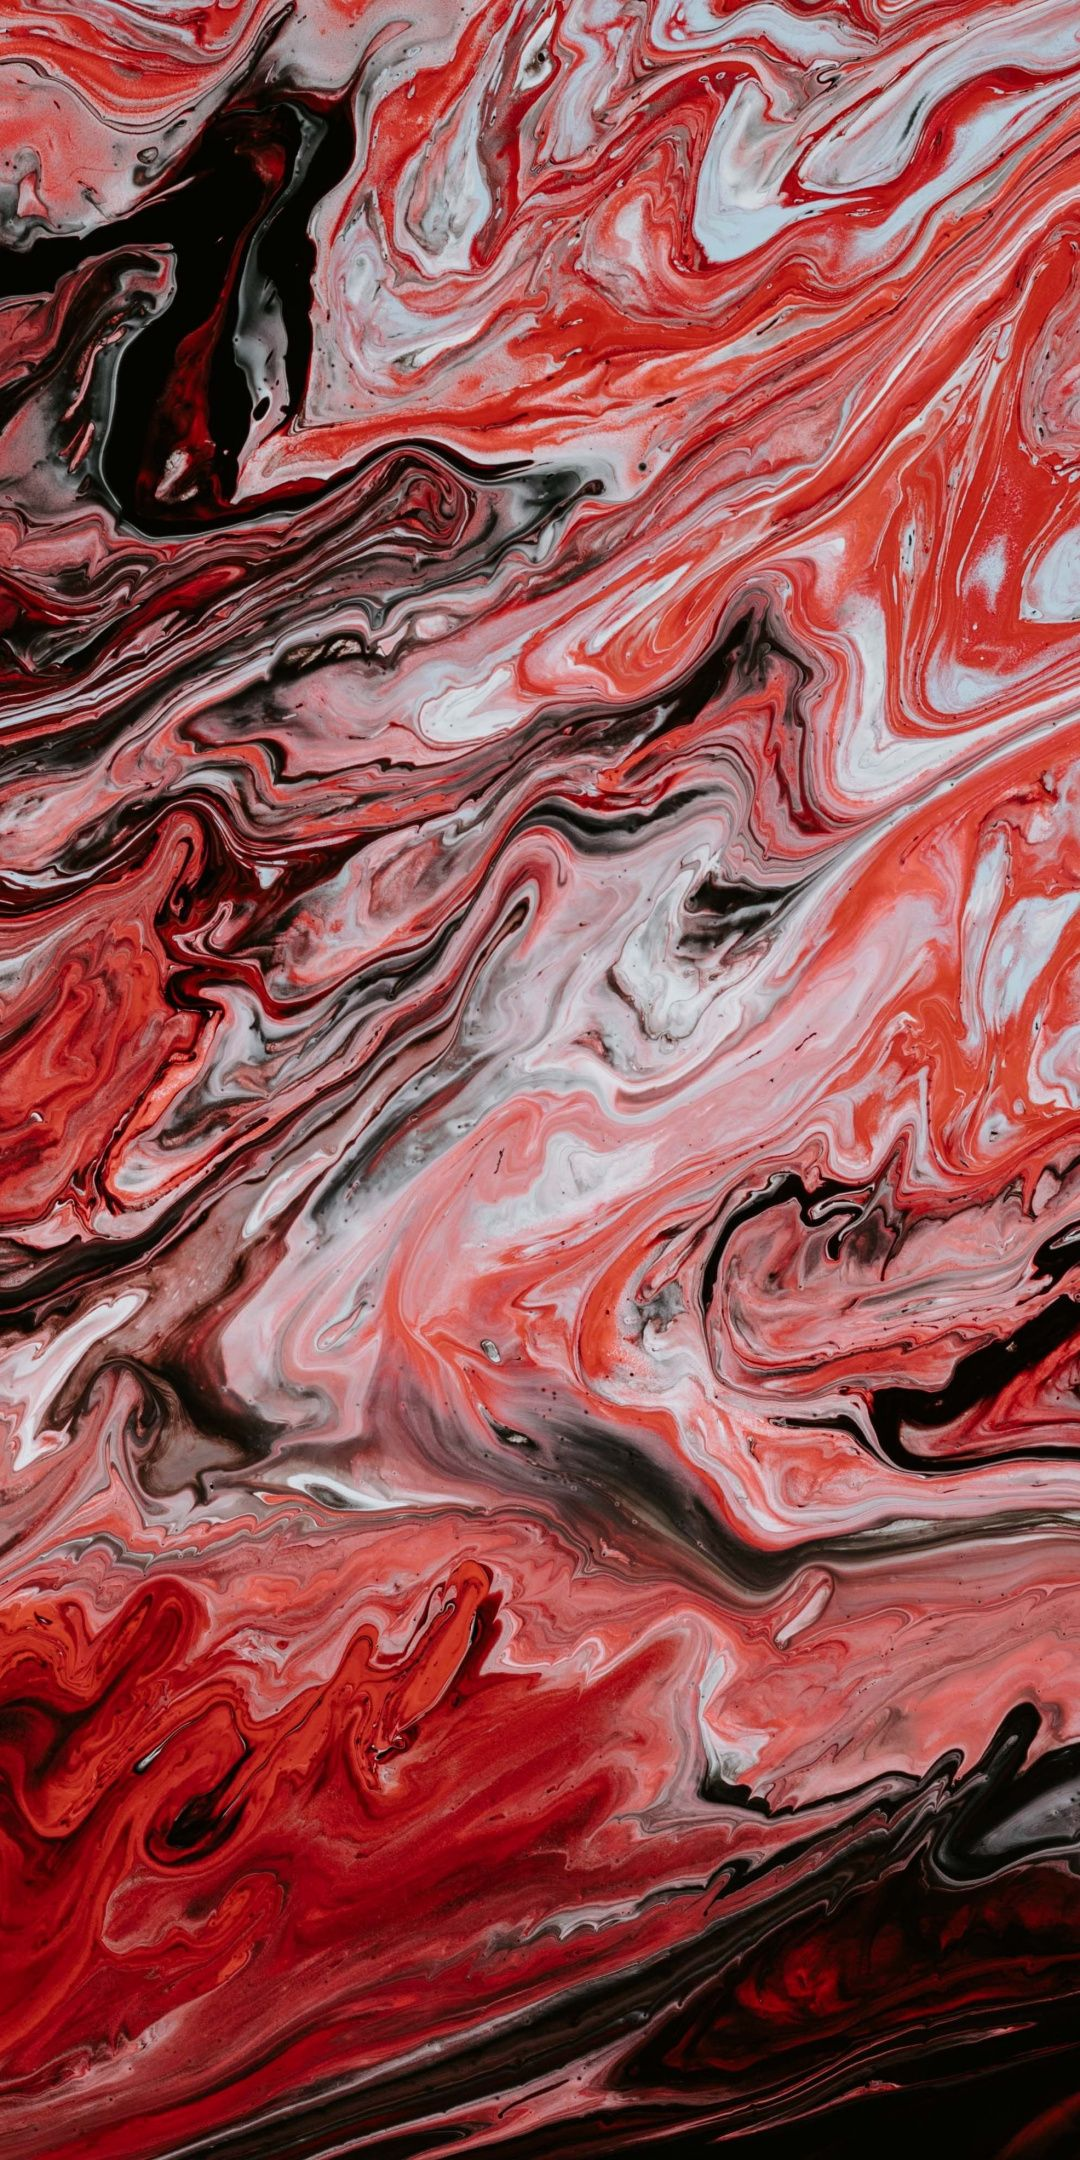 Red Canvas Texture Artwork 1080x2160 Wallpaper Marble Wallpaper Phone Red Wallpaper Textured Artwork